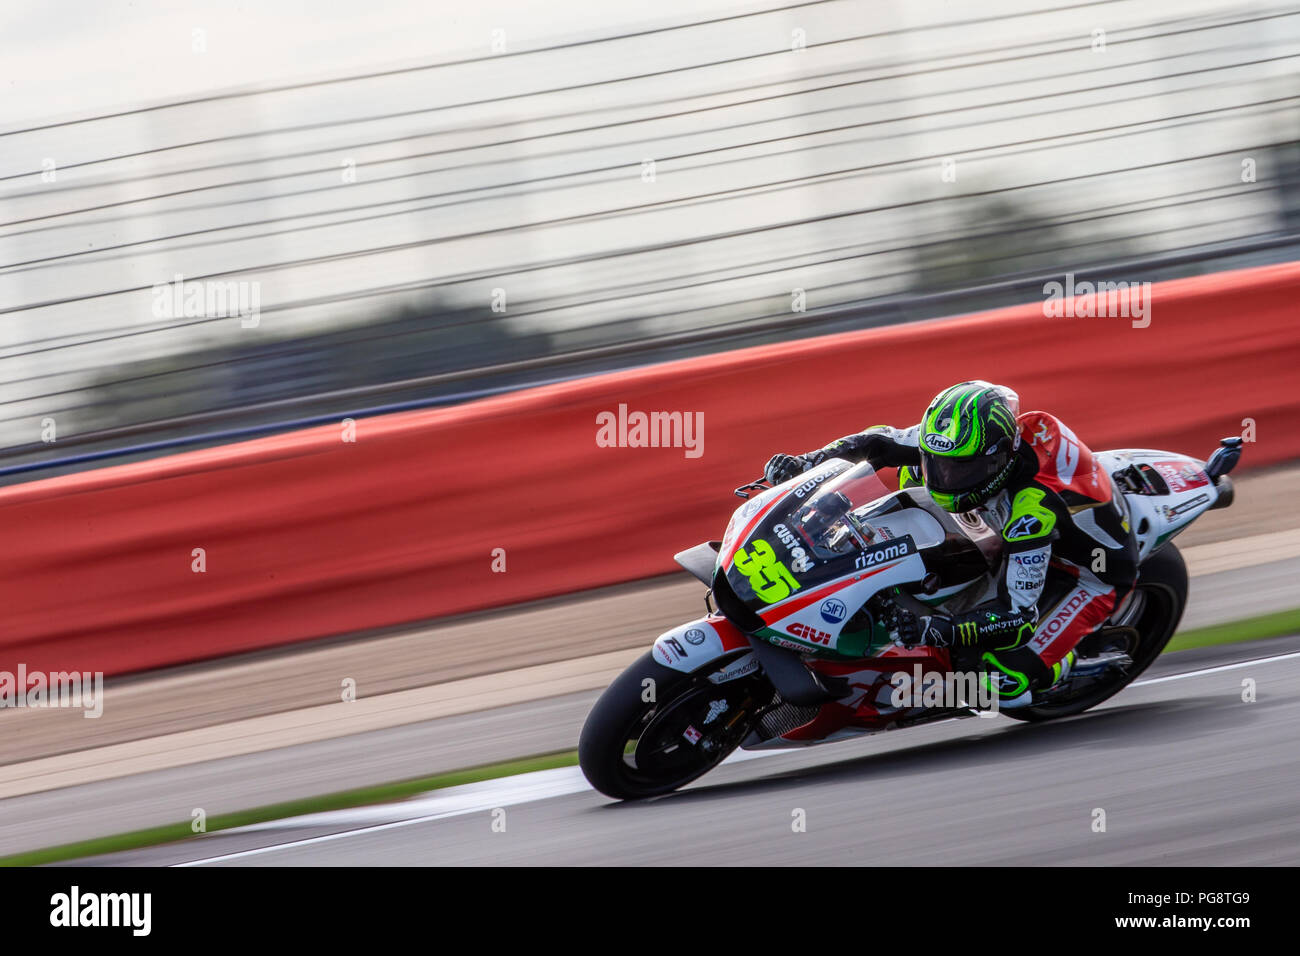 Silverstone Race Circuit Northamptonshire Uk 25th Aug 2018